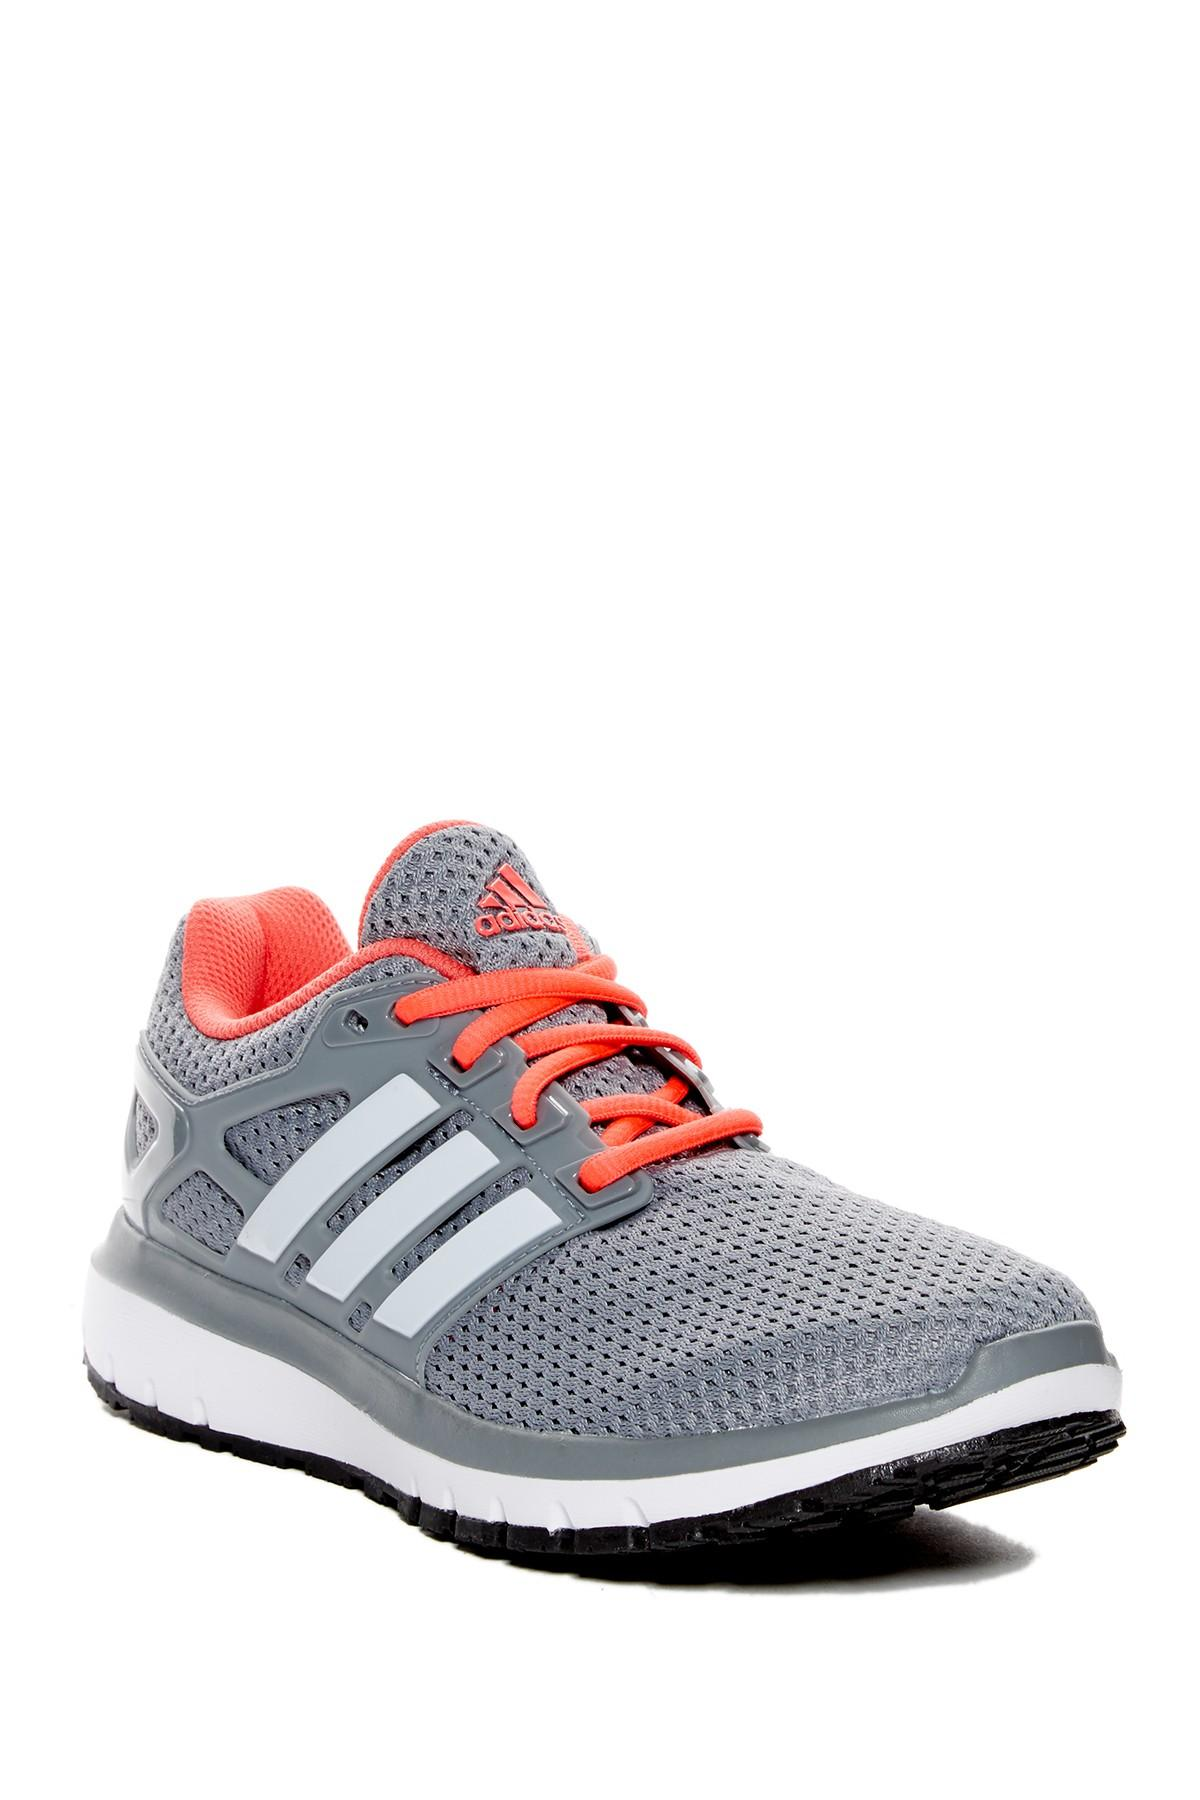 the best attitude 6f4fe 028a6 Lyst - adidas Originals Energy Cloudfoam Running Shoe in Gra